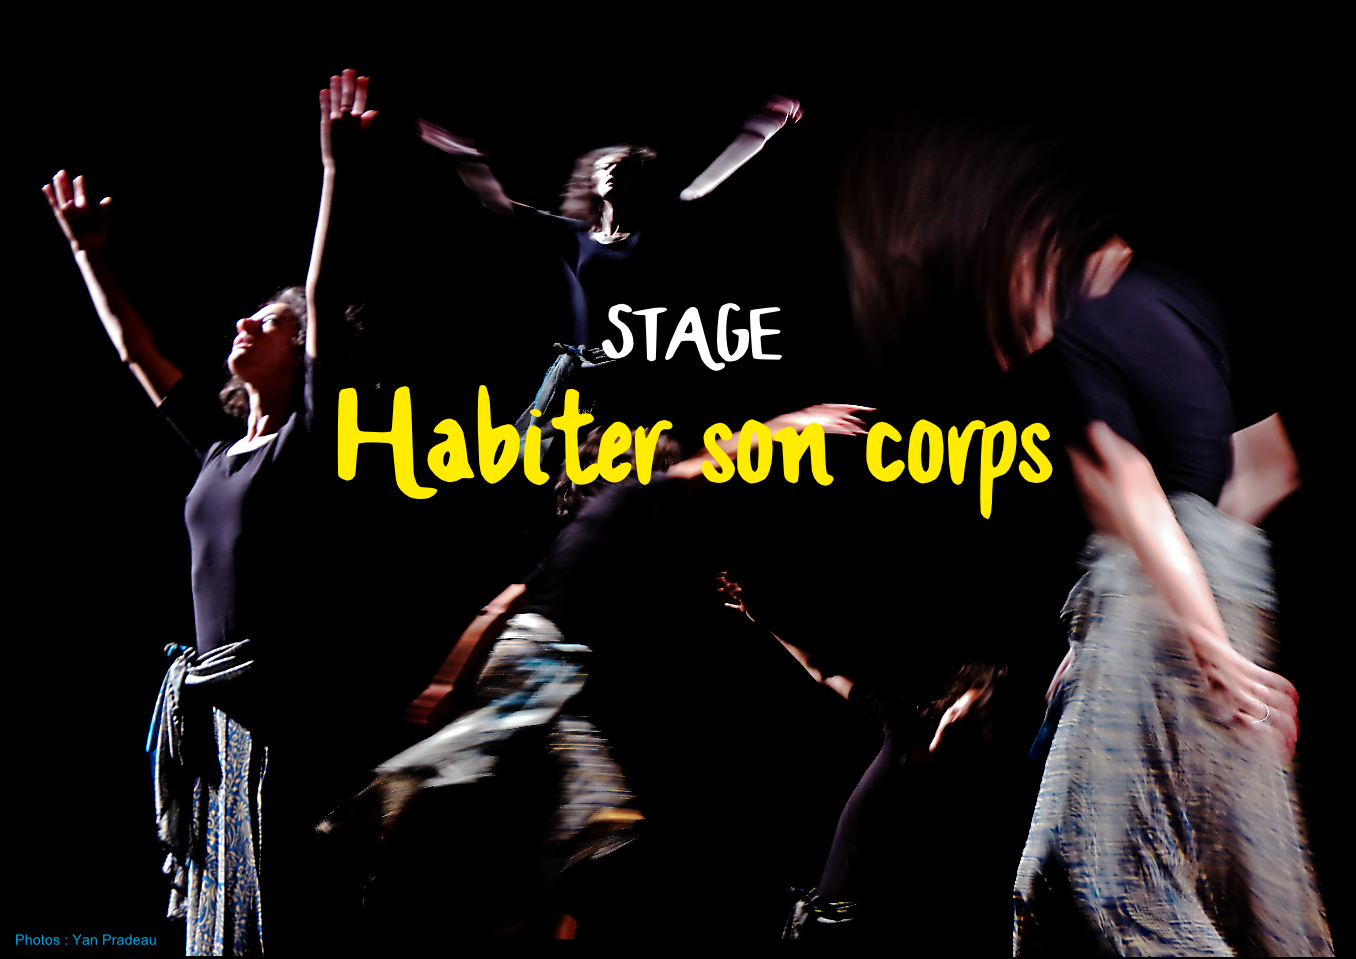 Stage Habiter son corps